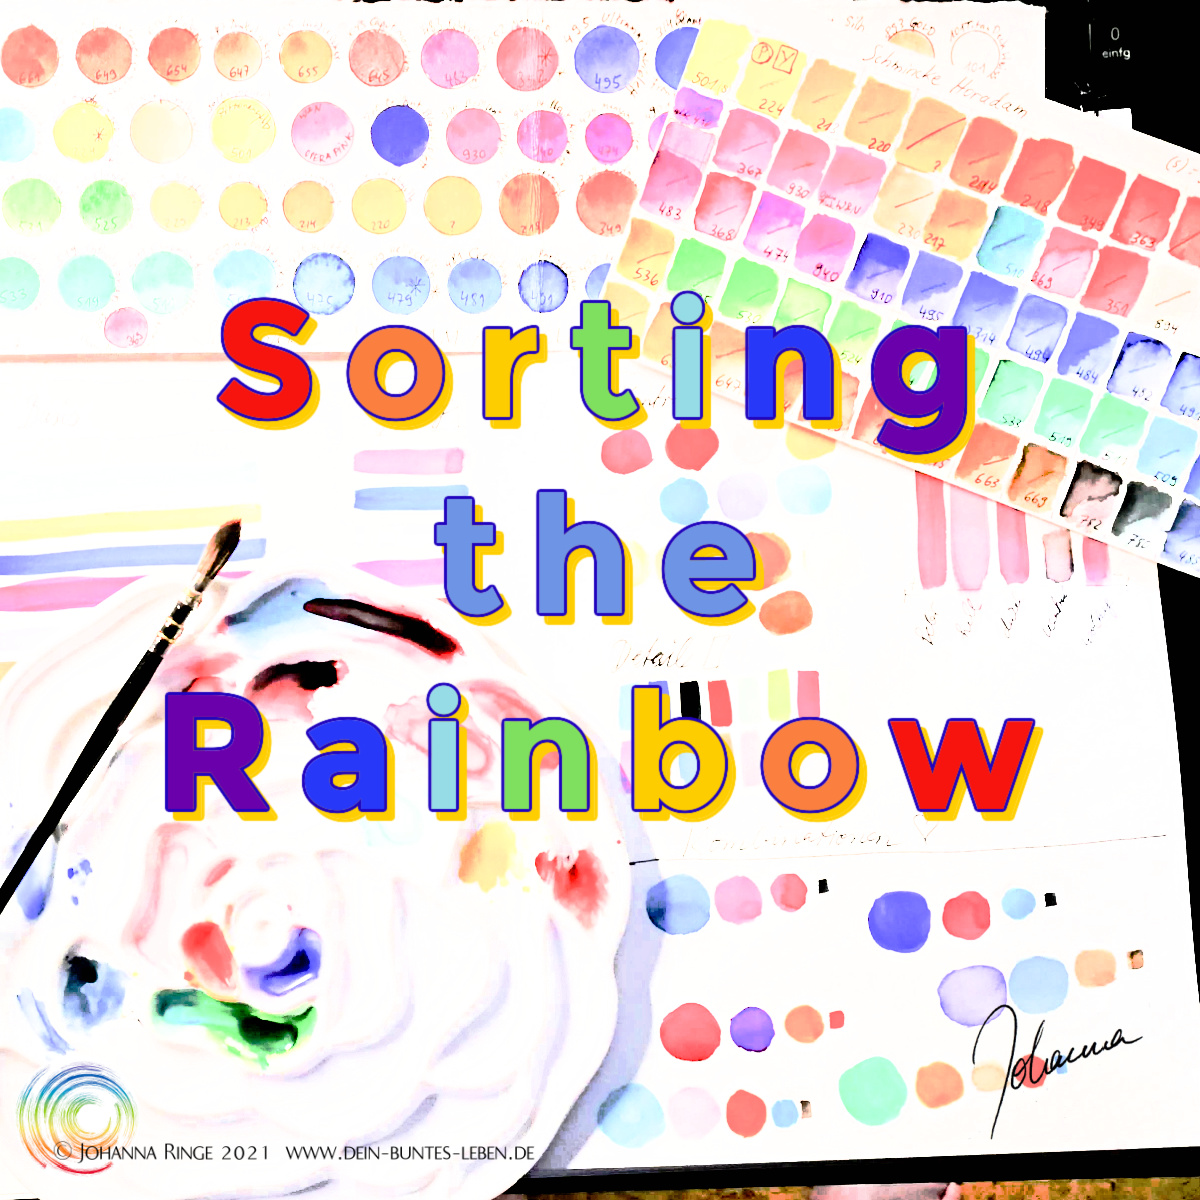 Sorting the rainbow (Text over photograph of colortables, palette and brush) ©Johanna Ringe 2021 www.johannaringe.com